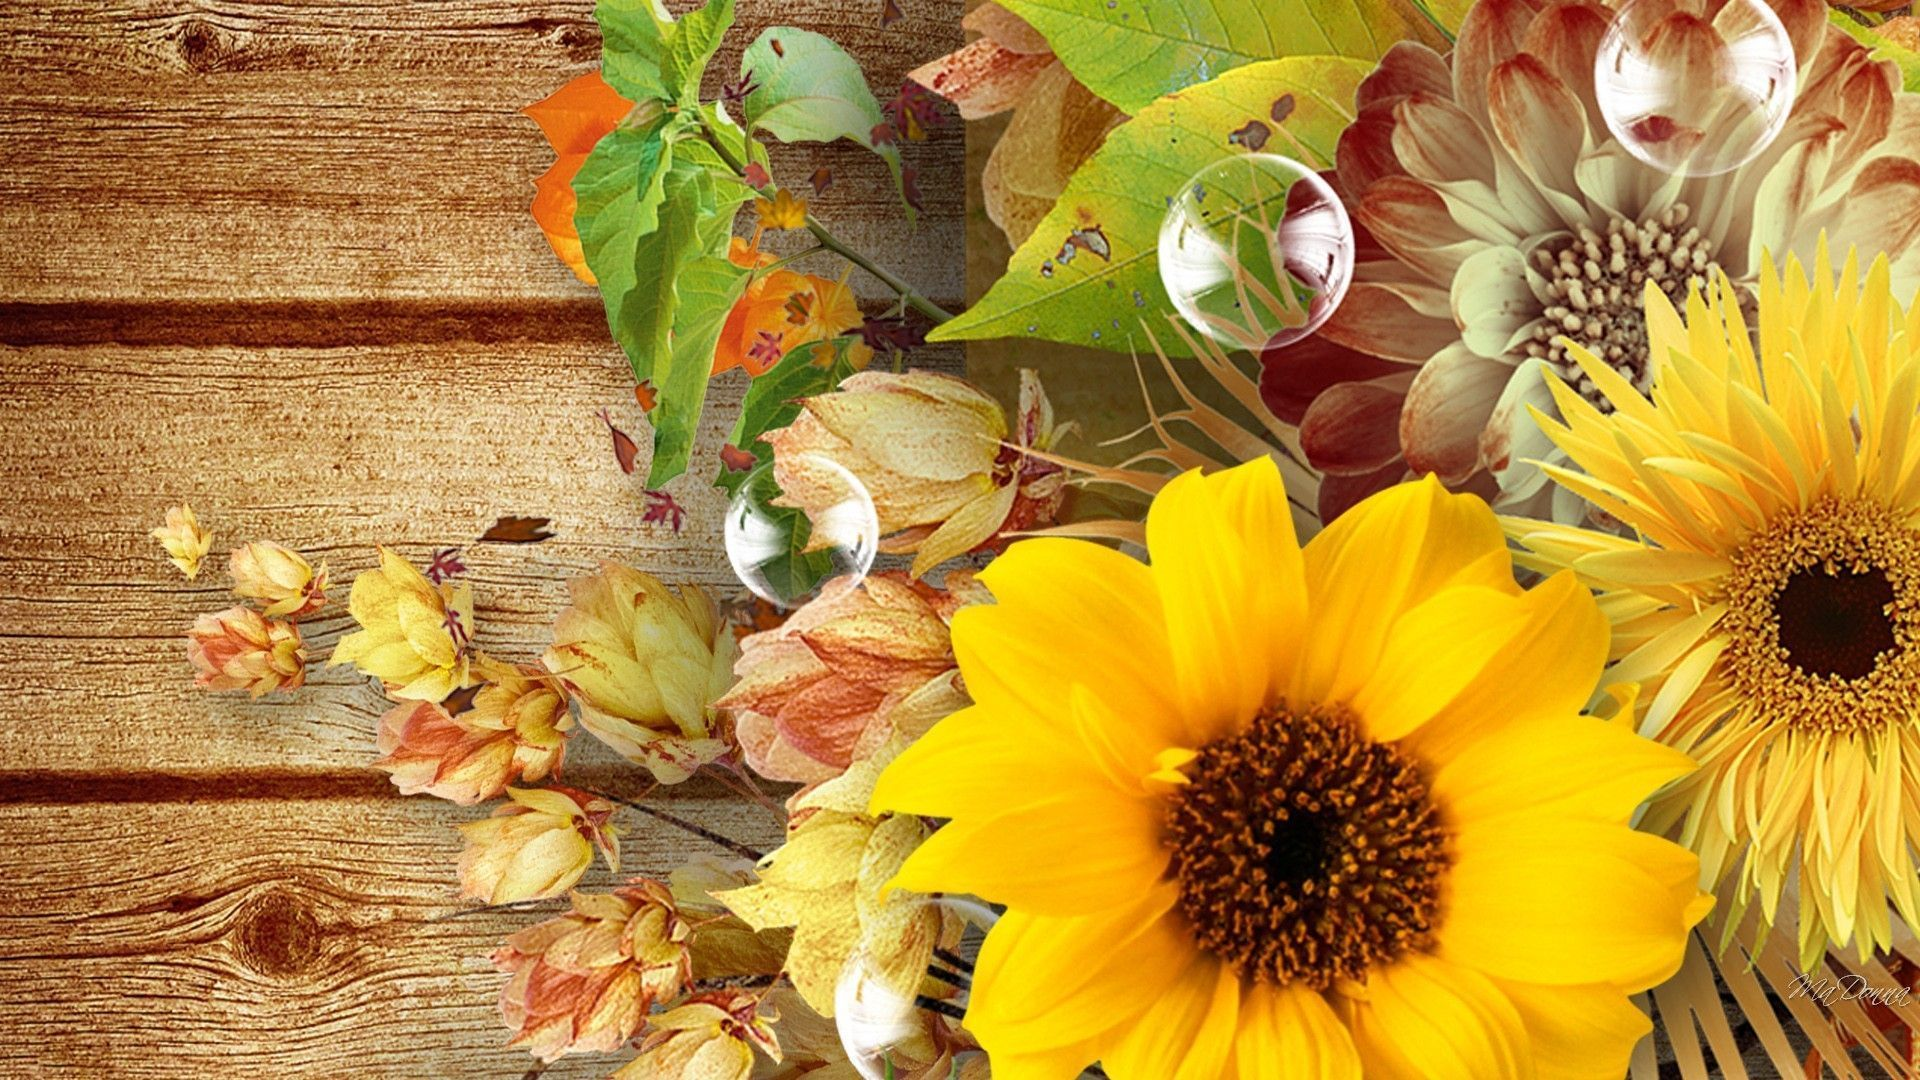 Autumn With Sunflowers Wallpapers - Wallpaper Cave